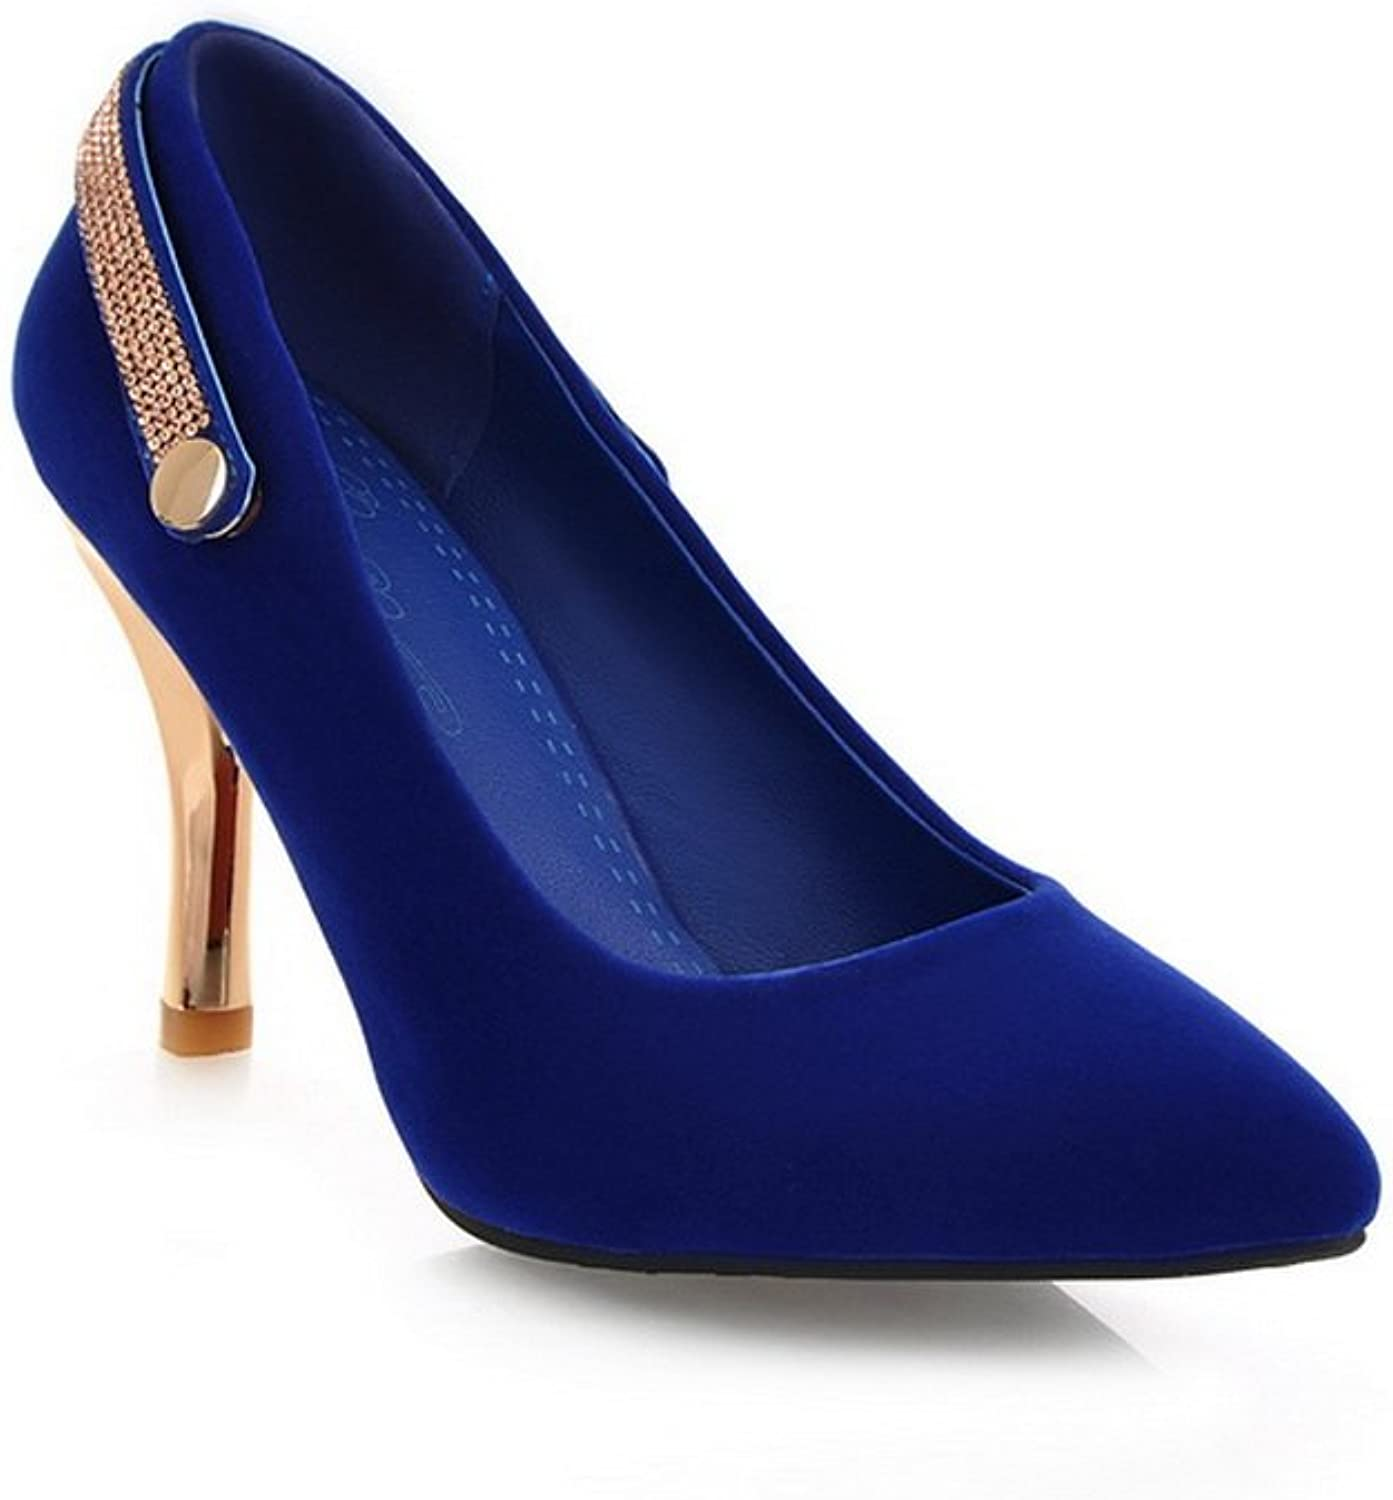 BalaMasa Womens High-Heels Slip-Resistant Pointed-Toe Frosted Pumps-shoes